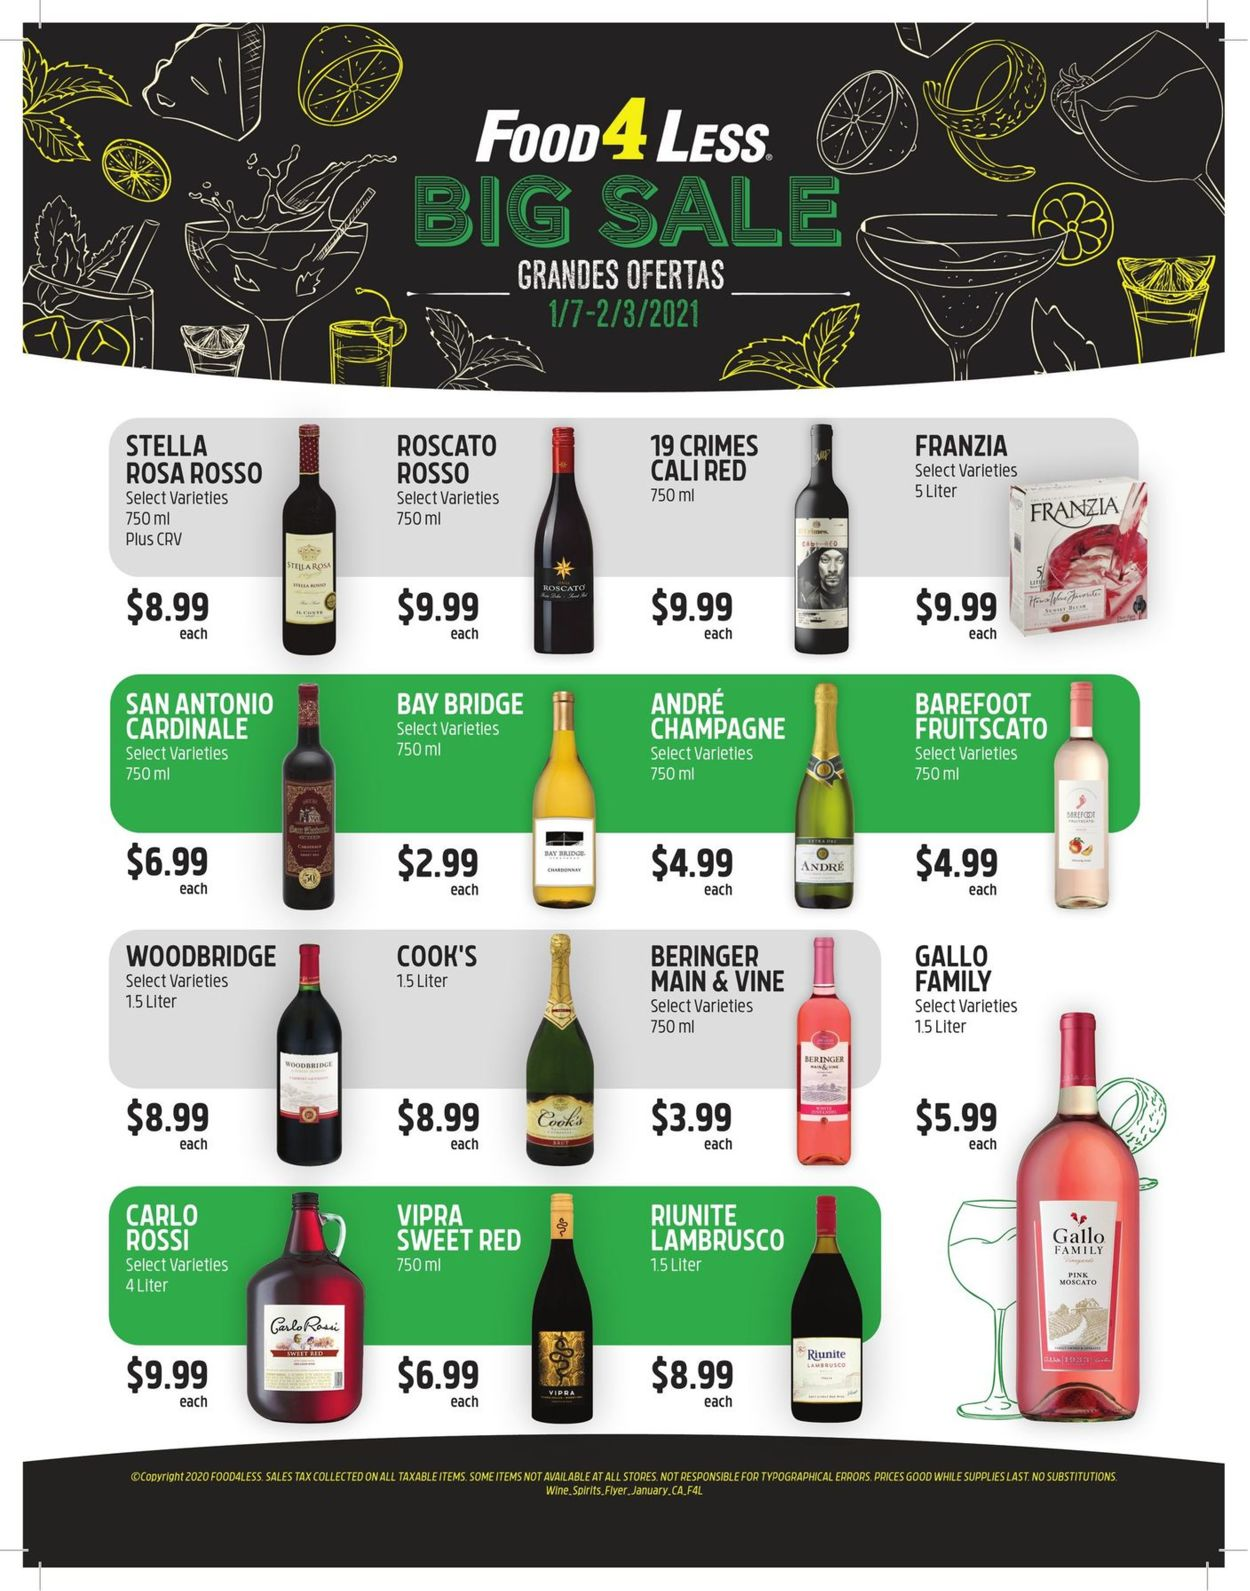 Catalogue Food 4 Less Big Sale 2021 from 01/07/2021